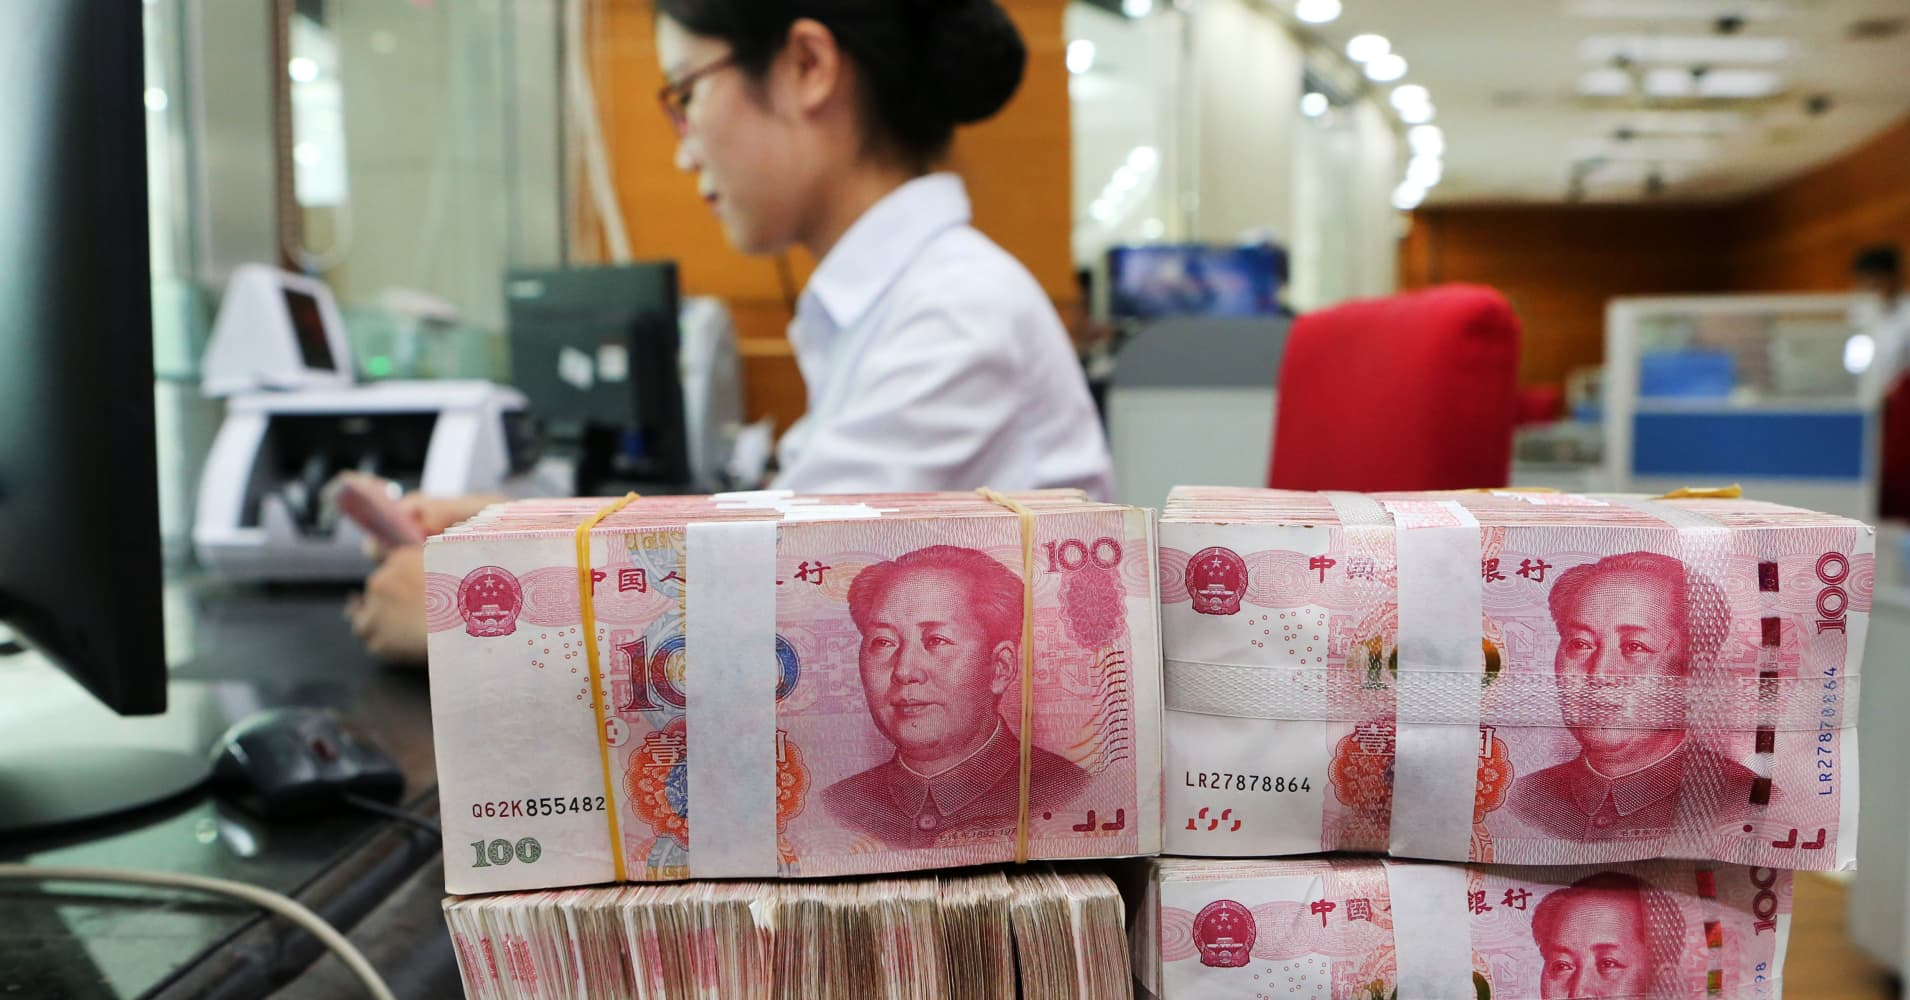 US wants a more stable yuan, China wants that too: Experts